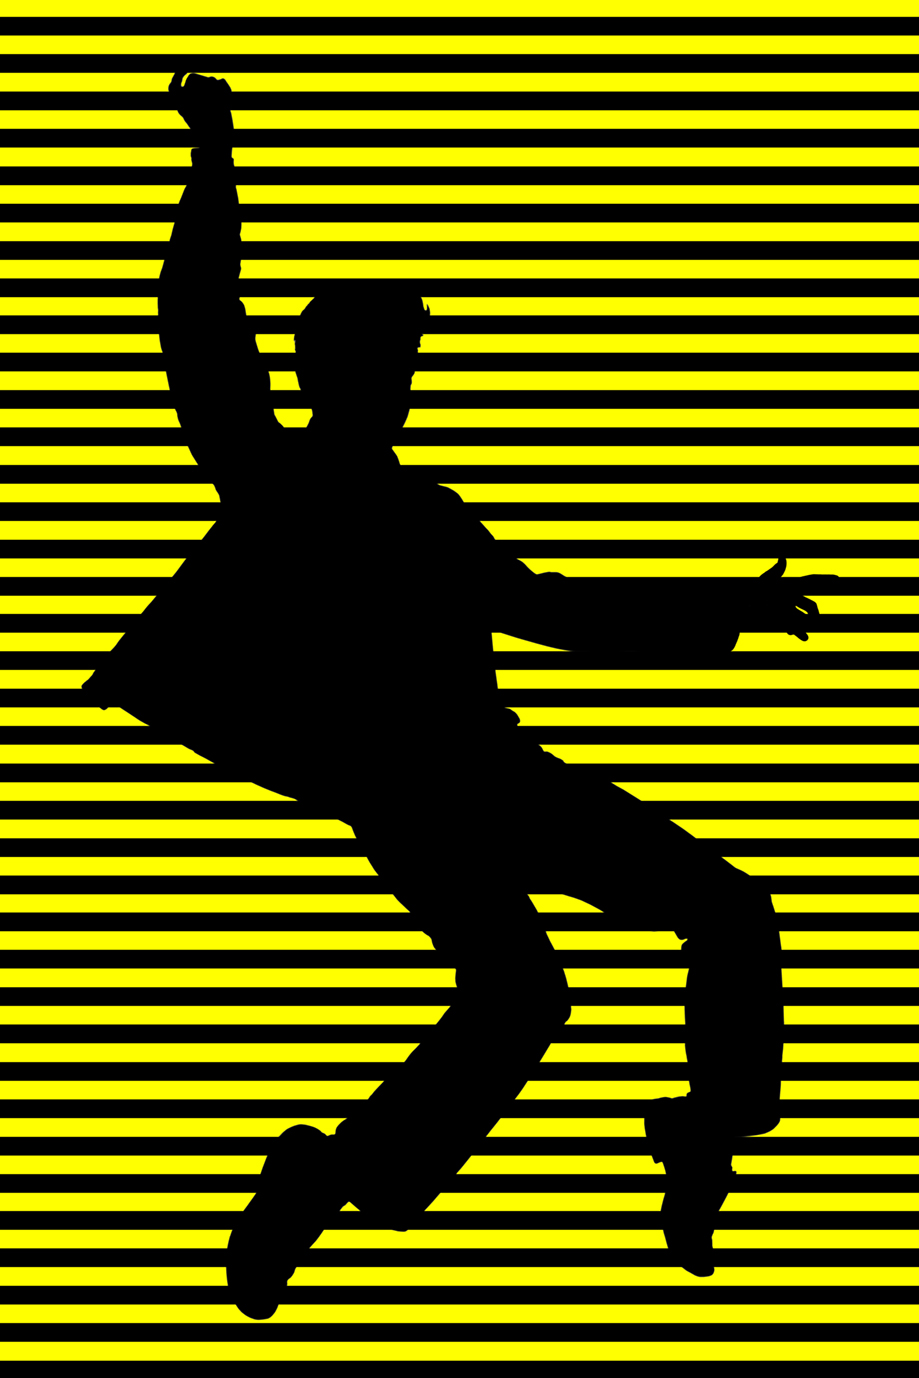 ELVIS DANCE YELLOW STRIPES